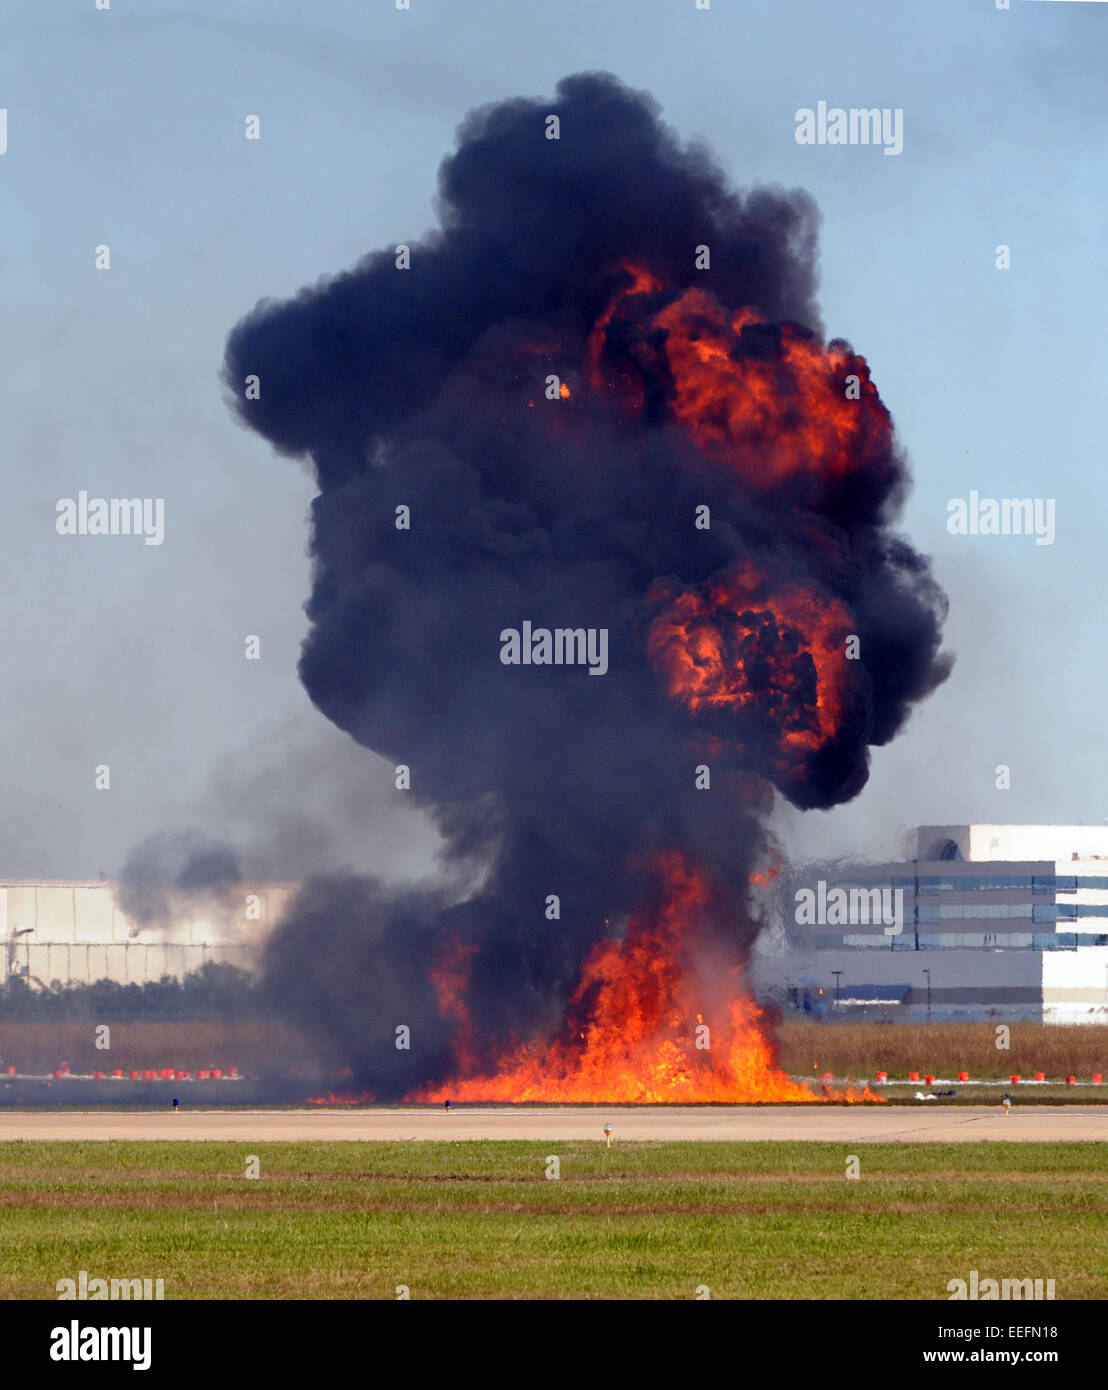 Giant outdoor explosion with flames and smoke - Stock Image